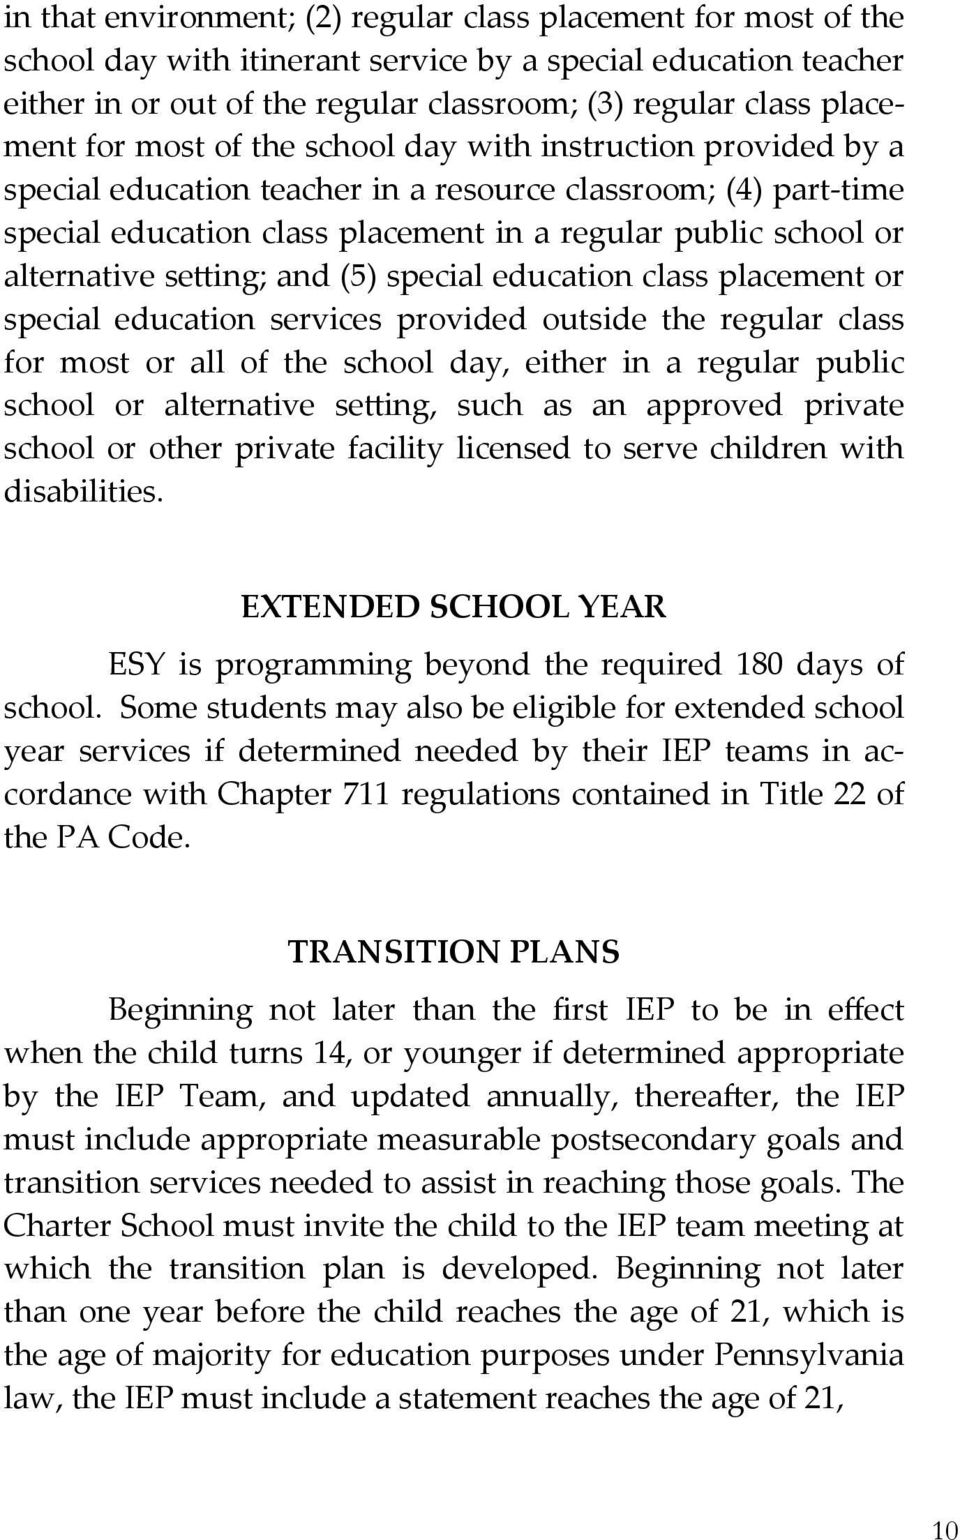 alternative sebing; and (5) special education class placement or special education services provided outside the regular class for most or all of the school day, either in a regular public school or